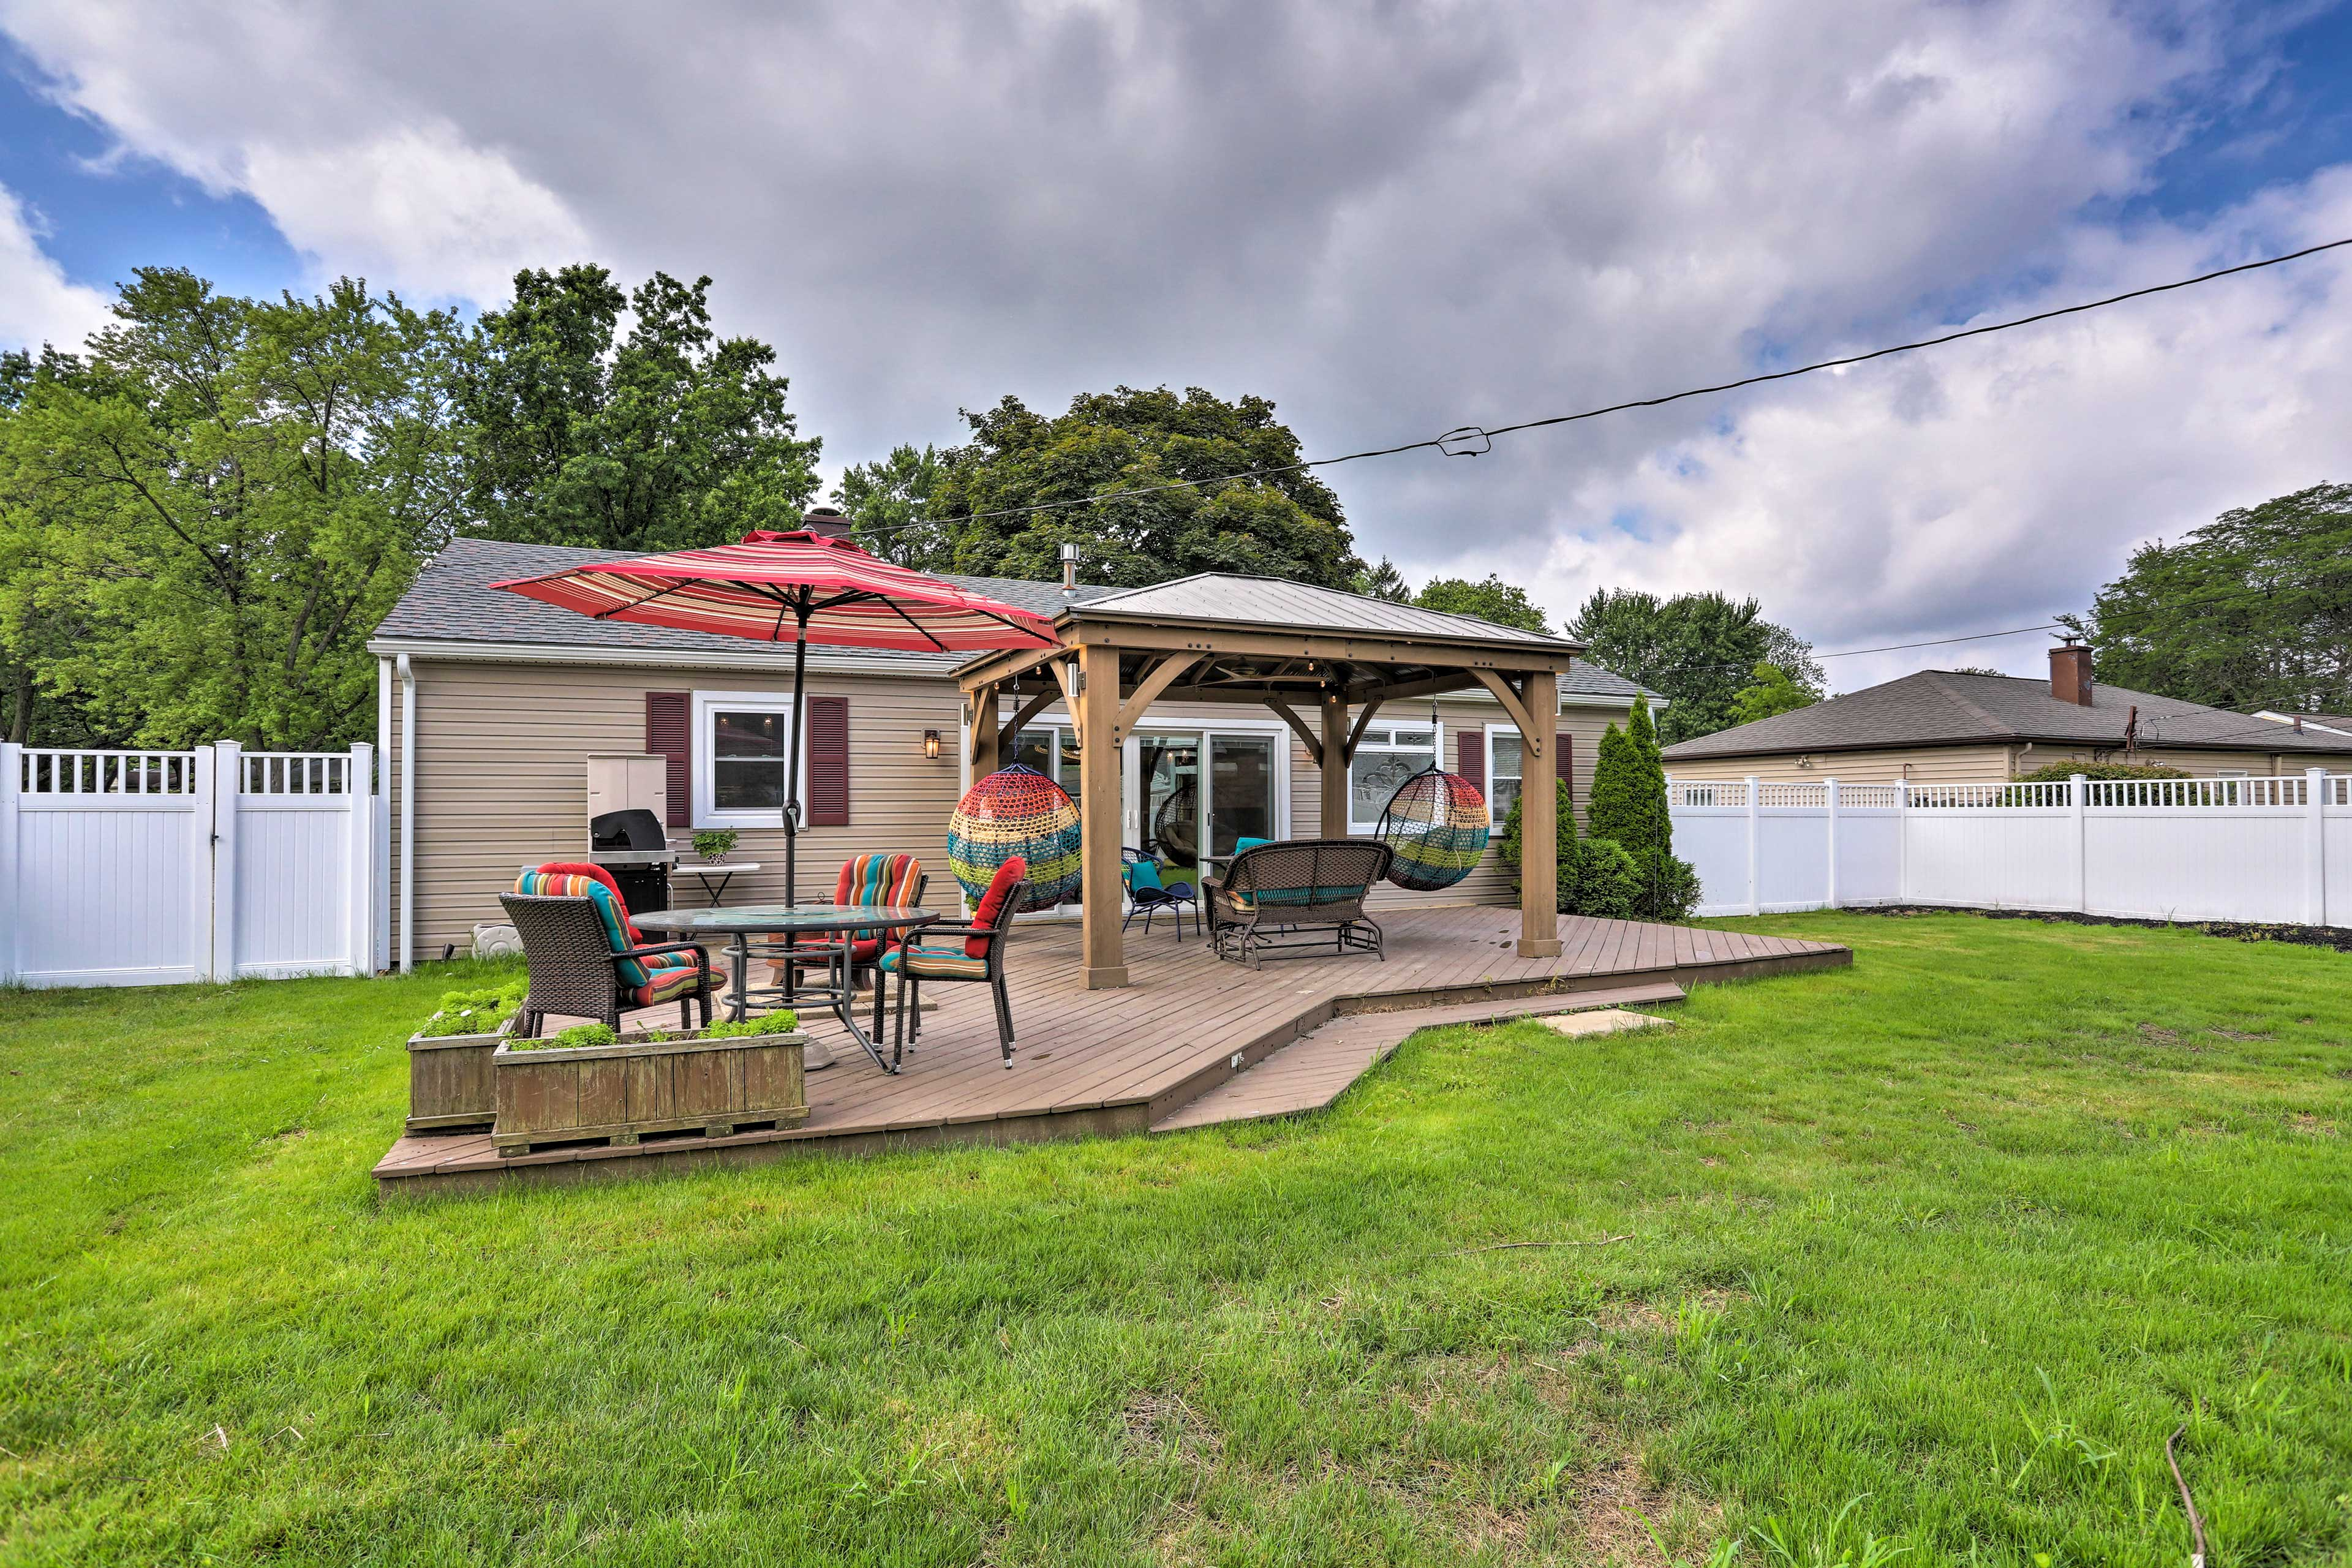 A relaxing retreat awaits you at this 2-bedroom, 2-bath vacation rental home!